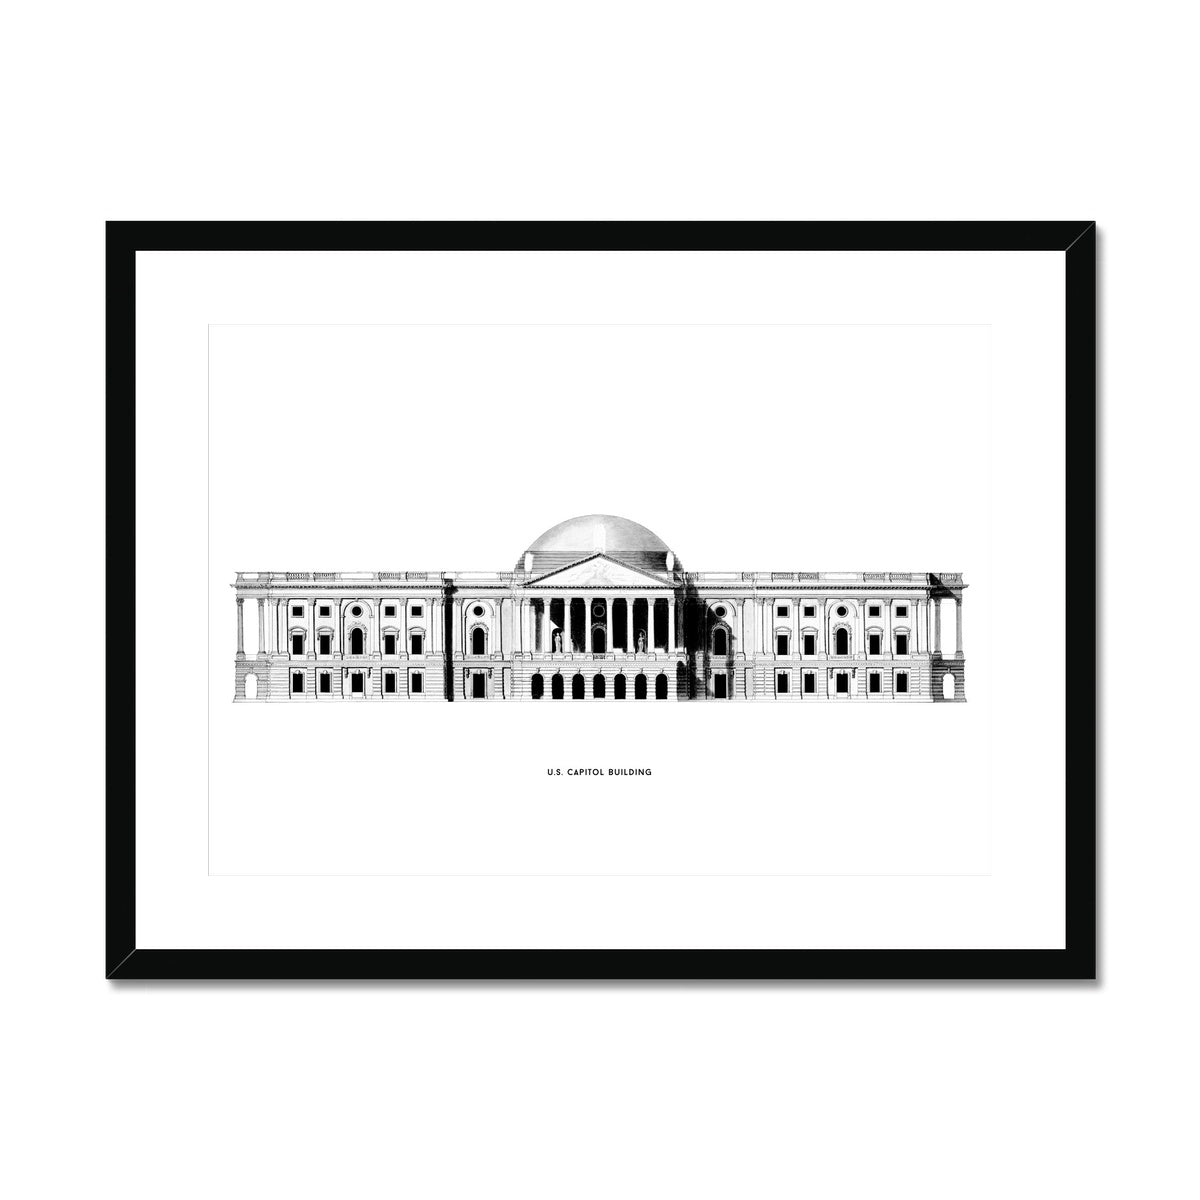 The U.S. Capitol Building - 1793 East Elevation - White -  Framed & Mounted Print